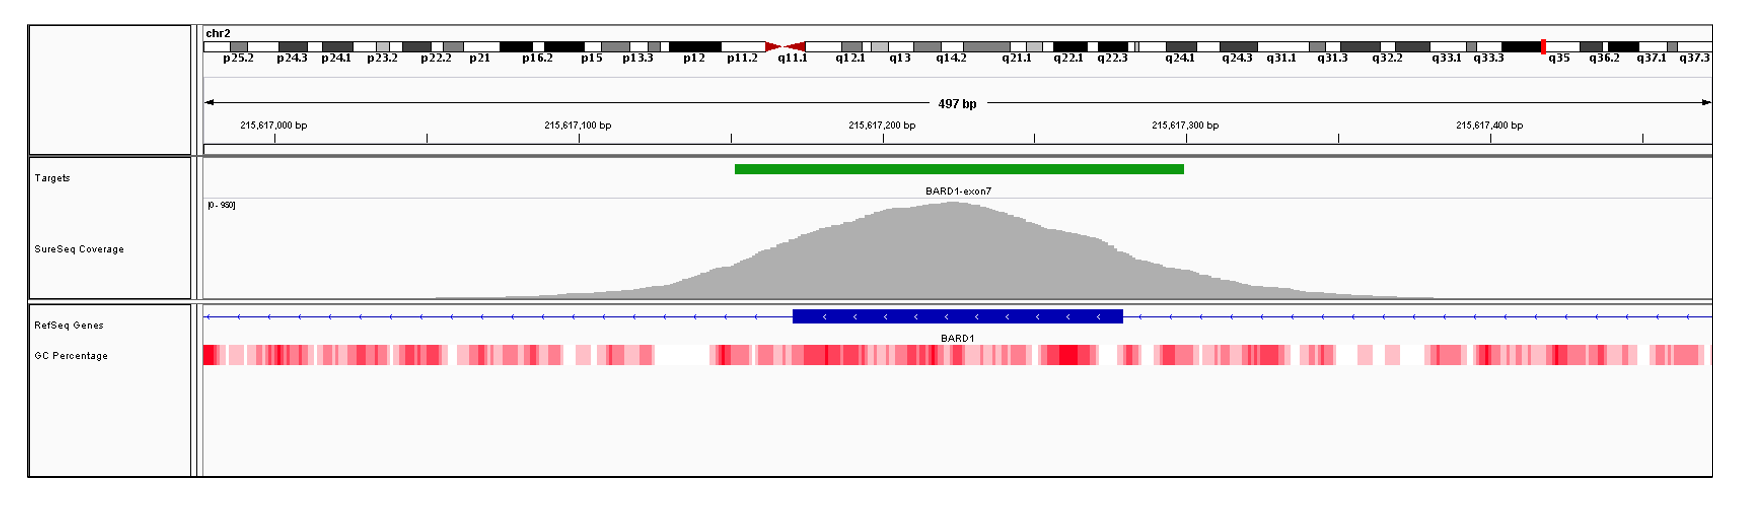 BARD1 Exon 7 (hg19 chr2:215617171-215617279). Depth of coverage per base (grey). Targeted region (green). Gene coding region as defined by RefSeq (blue). GC percentage (red). Image